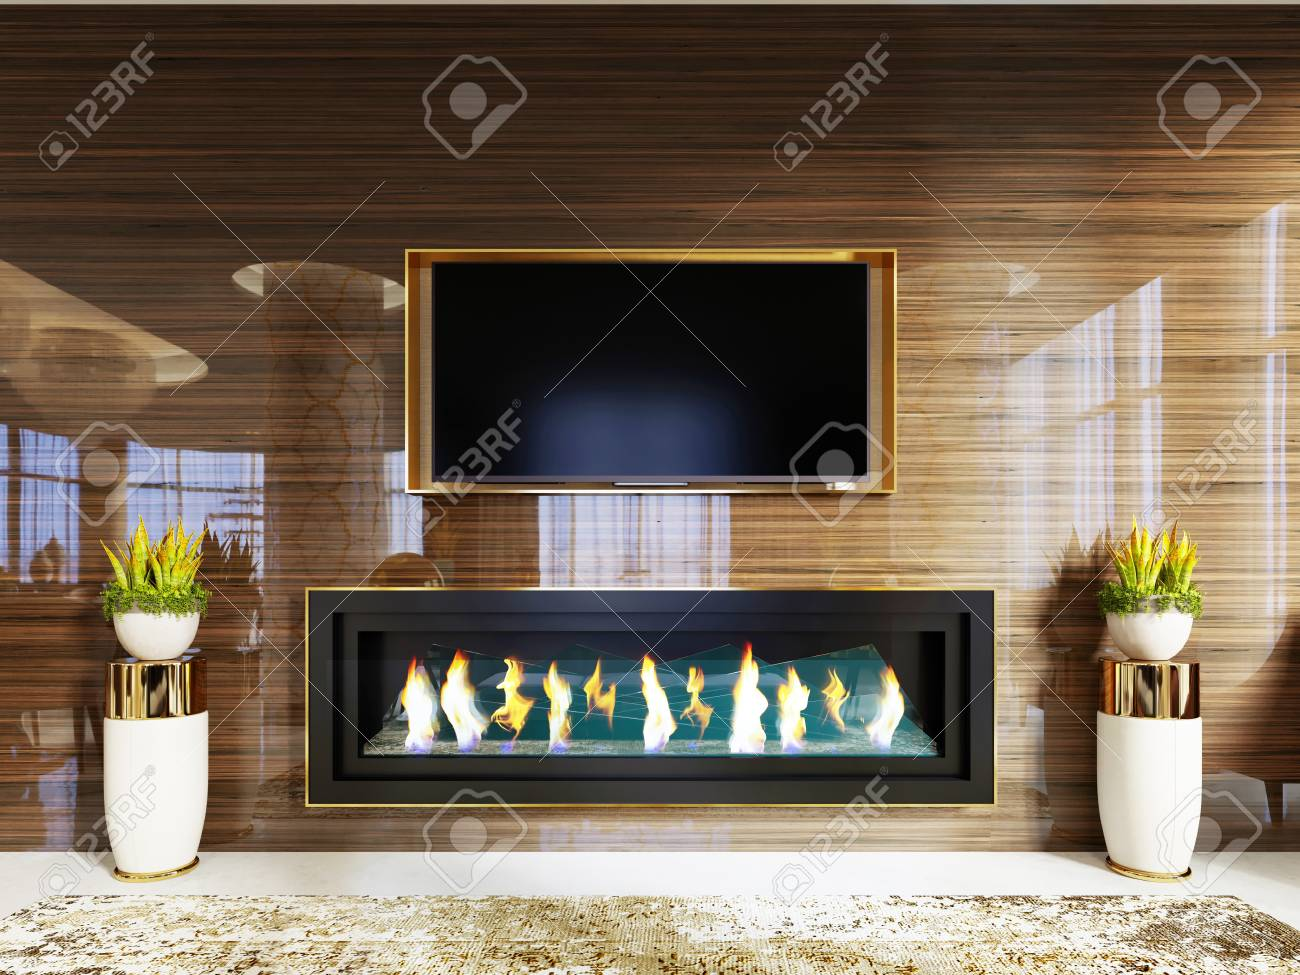 Luxury Designer Lobby Hotel With A Fireplace And A Tv Set Built